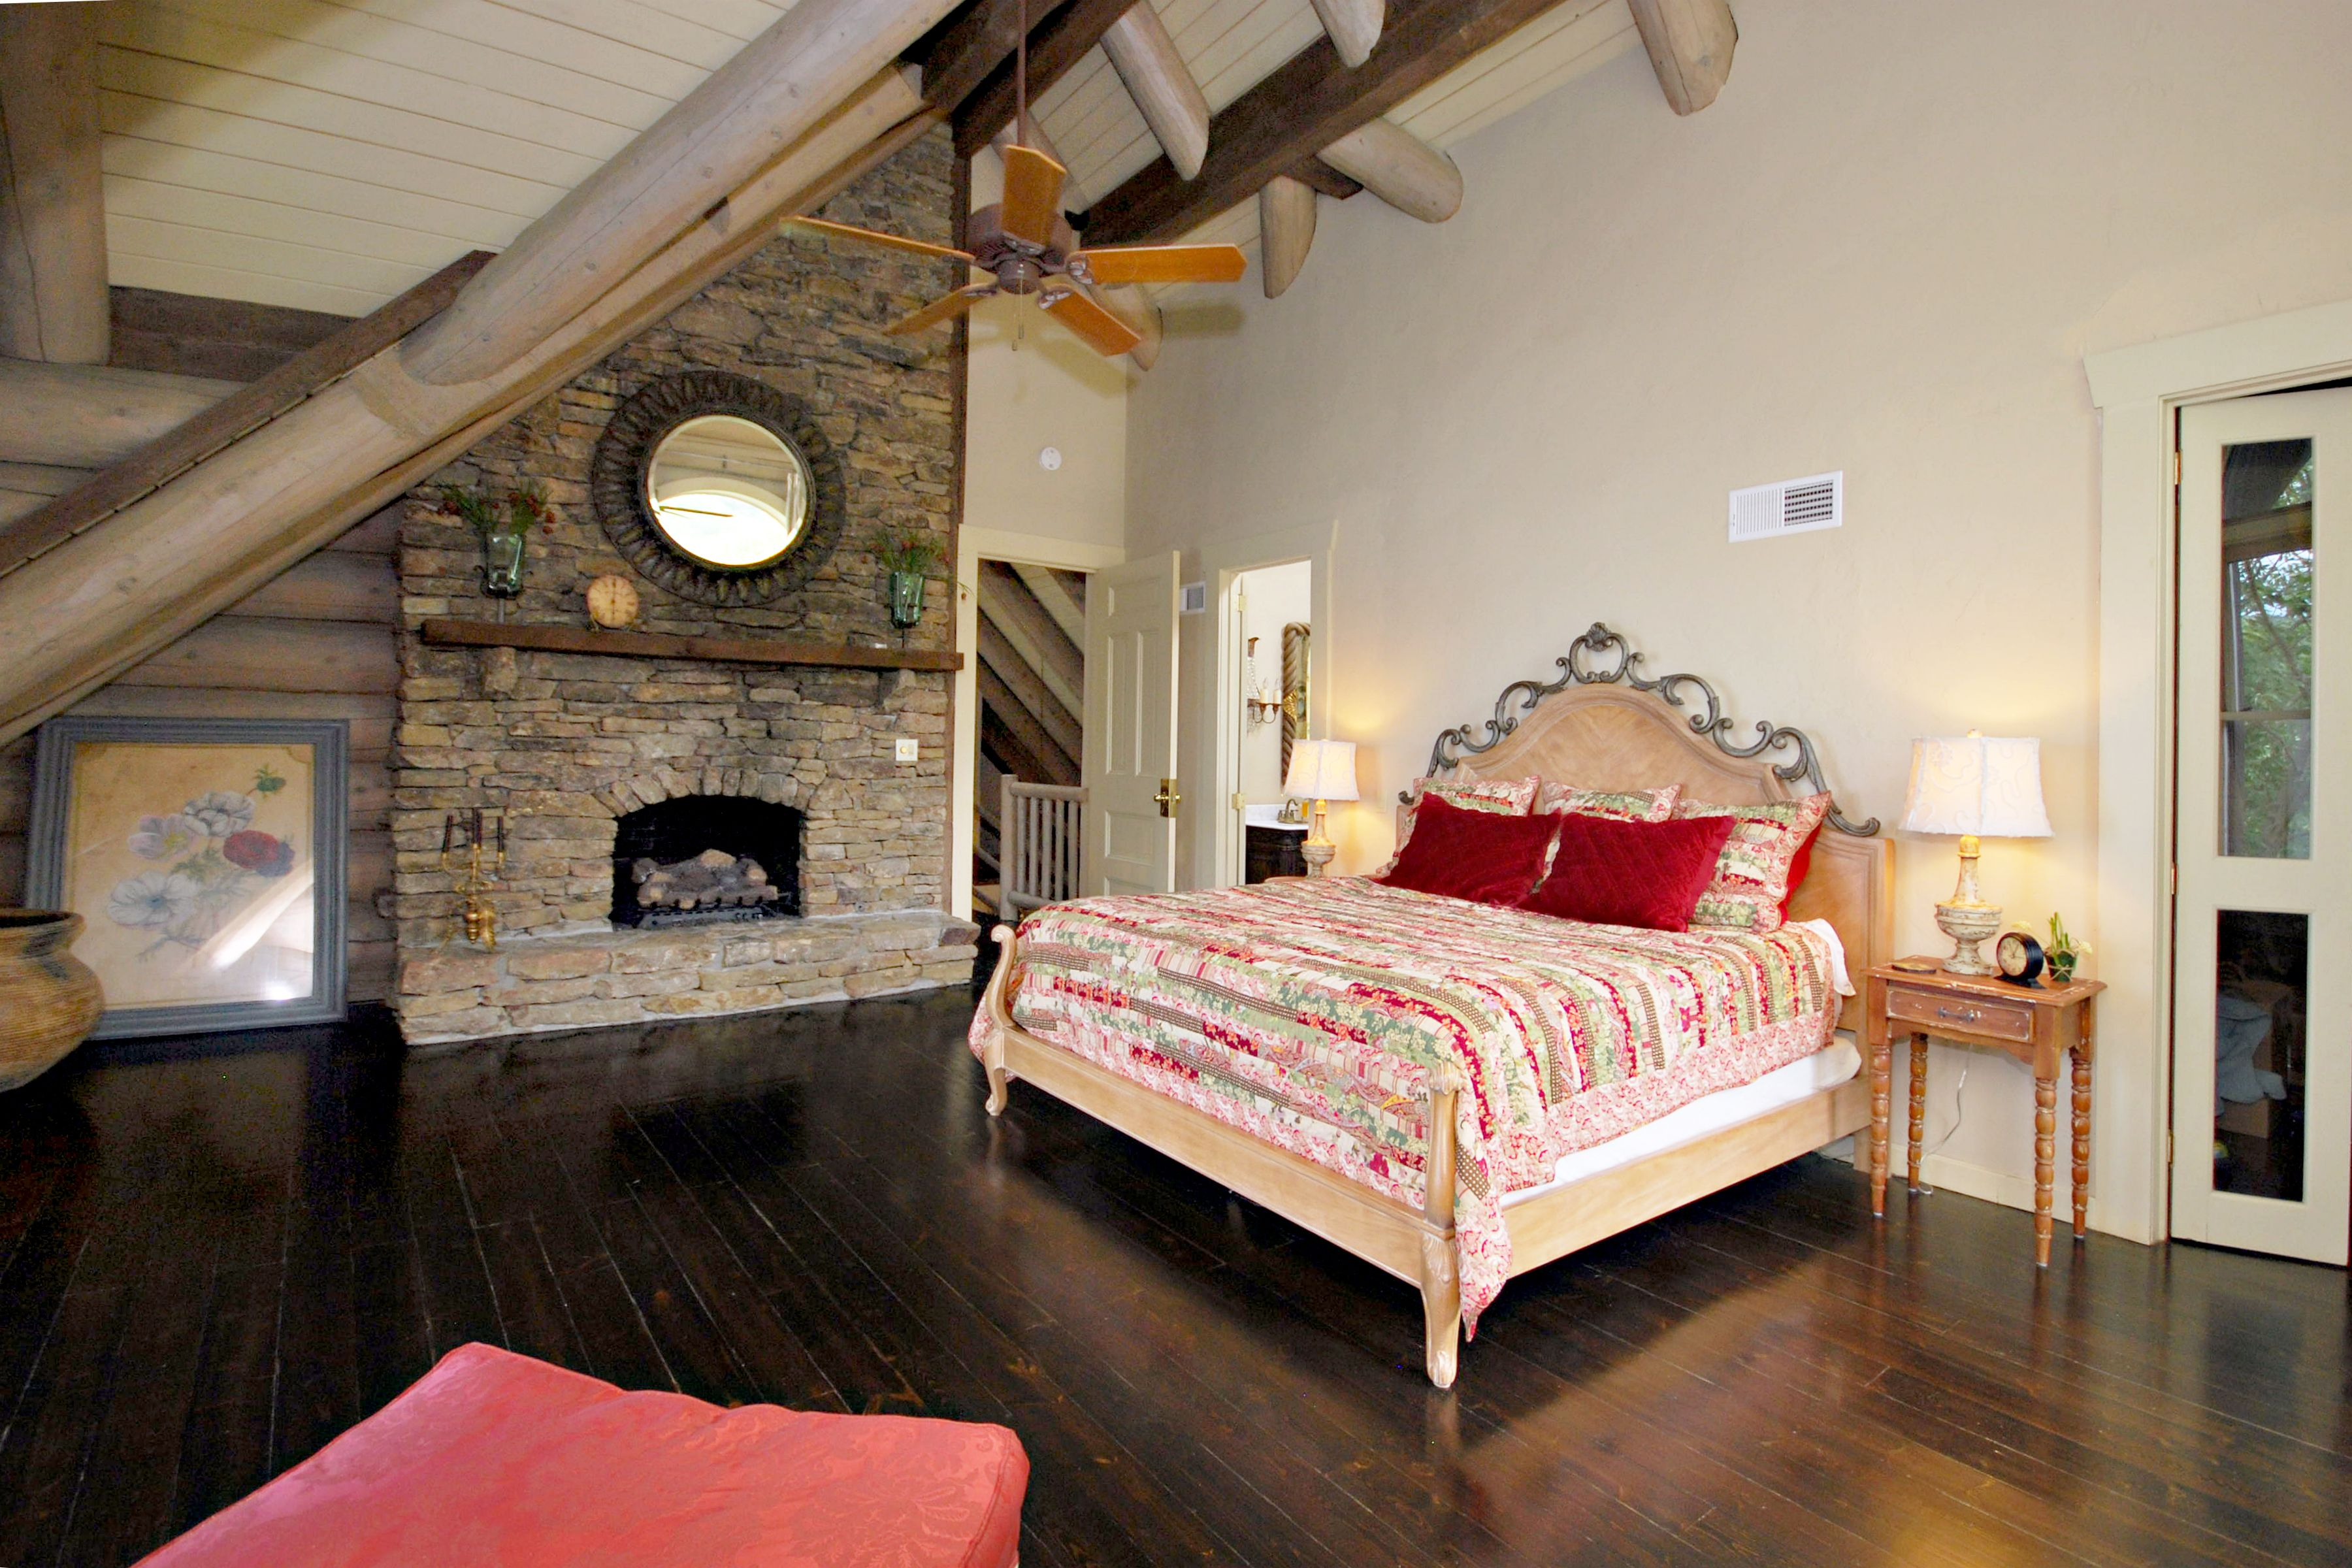 Master bedroom fireplace  Vaulted ceilings a stacked stone gaslog fireplace spa bath and a